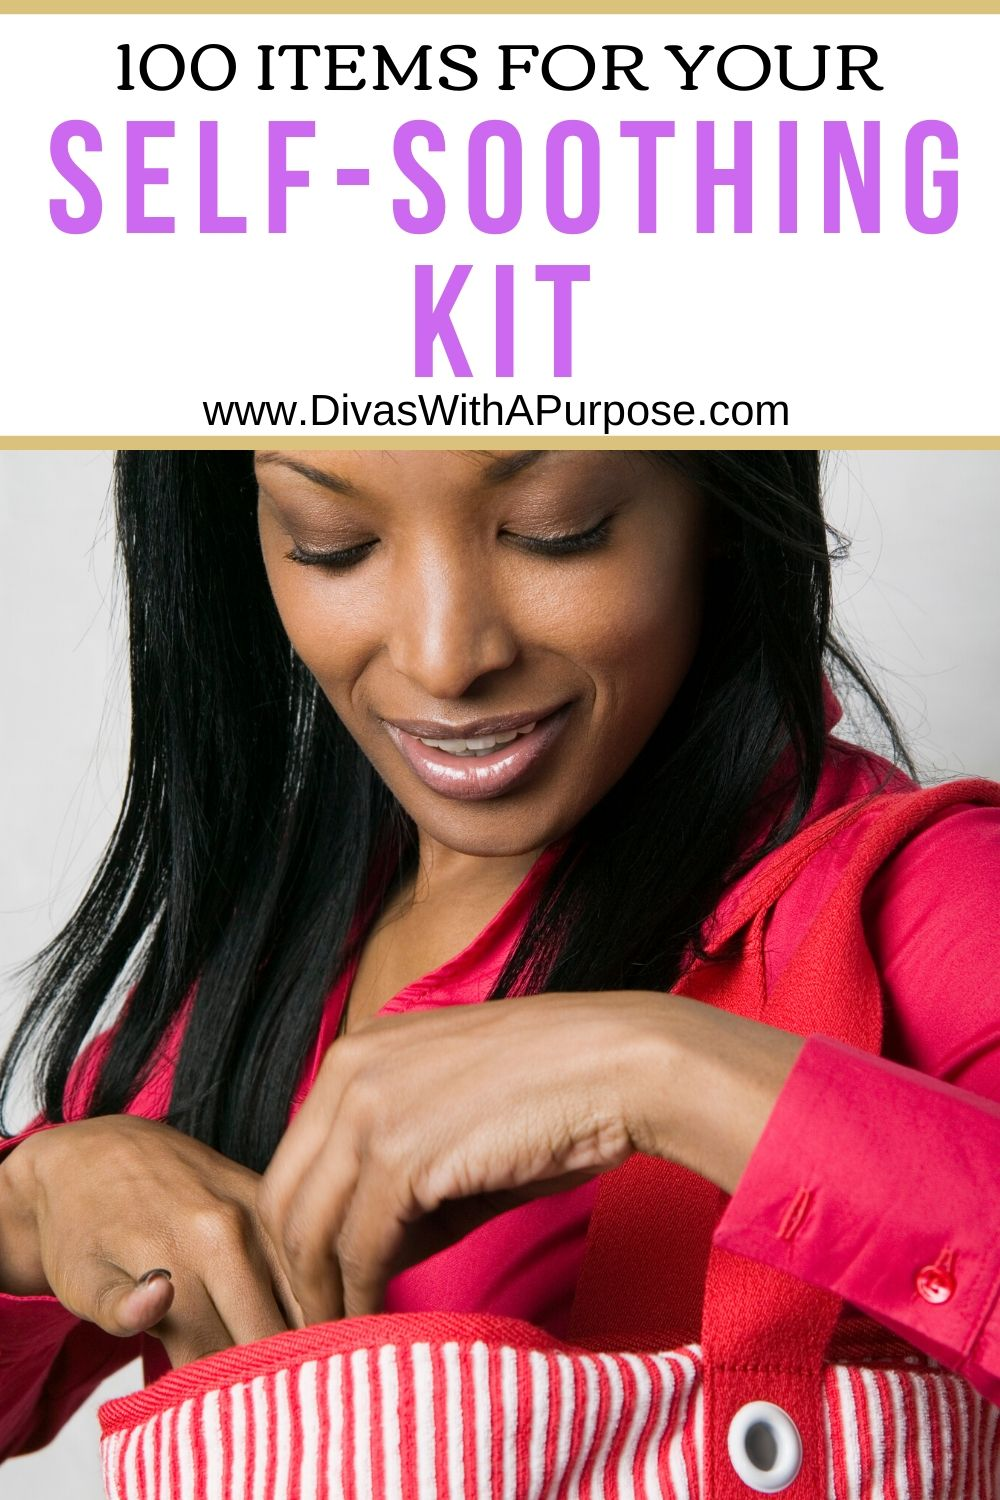 A self-soothing kit should include items that make you feel safe, loved, and nurtured so when moments of anxiety or panic arise have what you need close by.